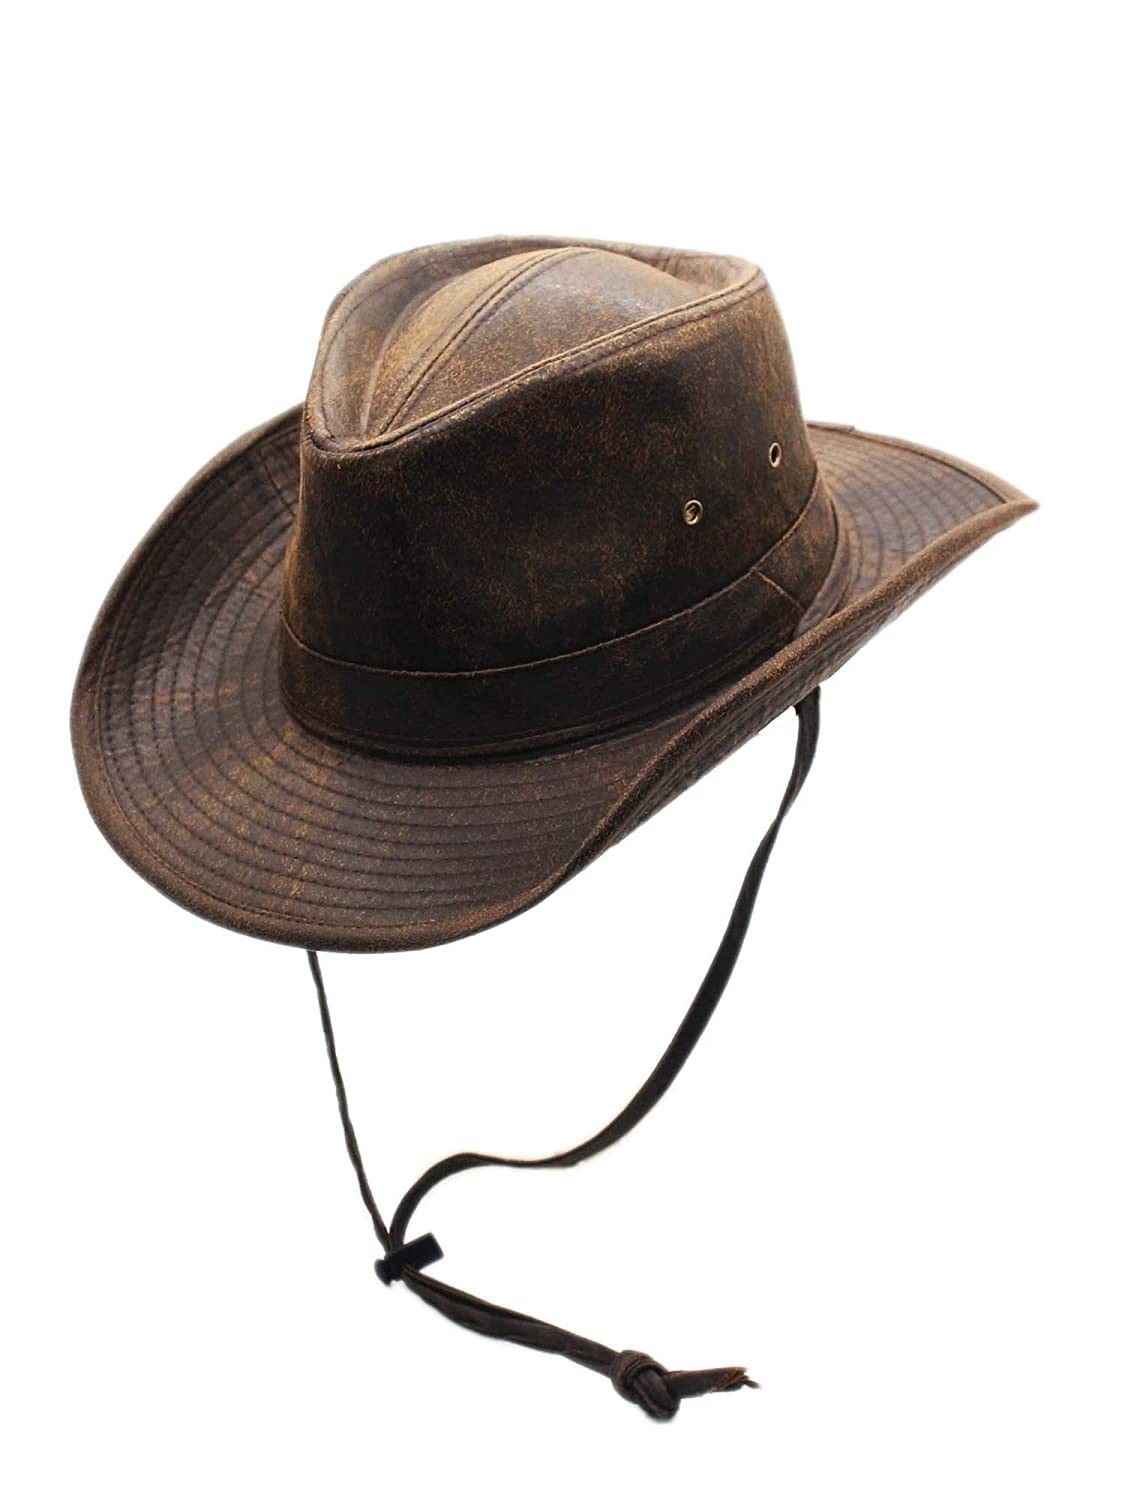 ea34da641 Weathered Outback Outdoorsmen Shapeable Hat, Silver Canyon, Brown